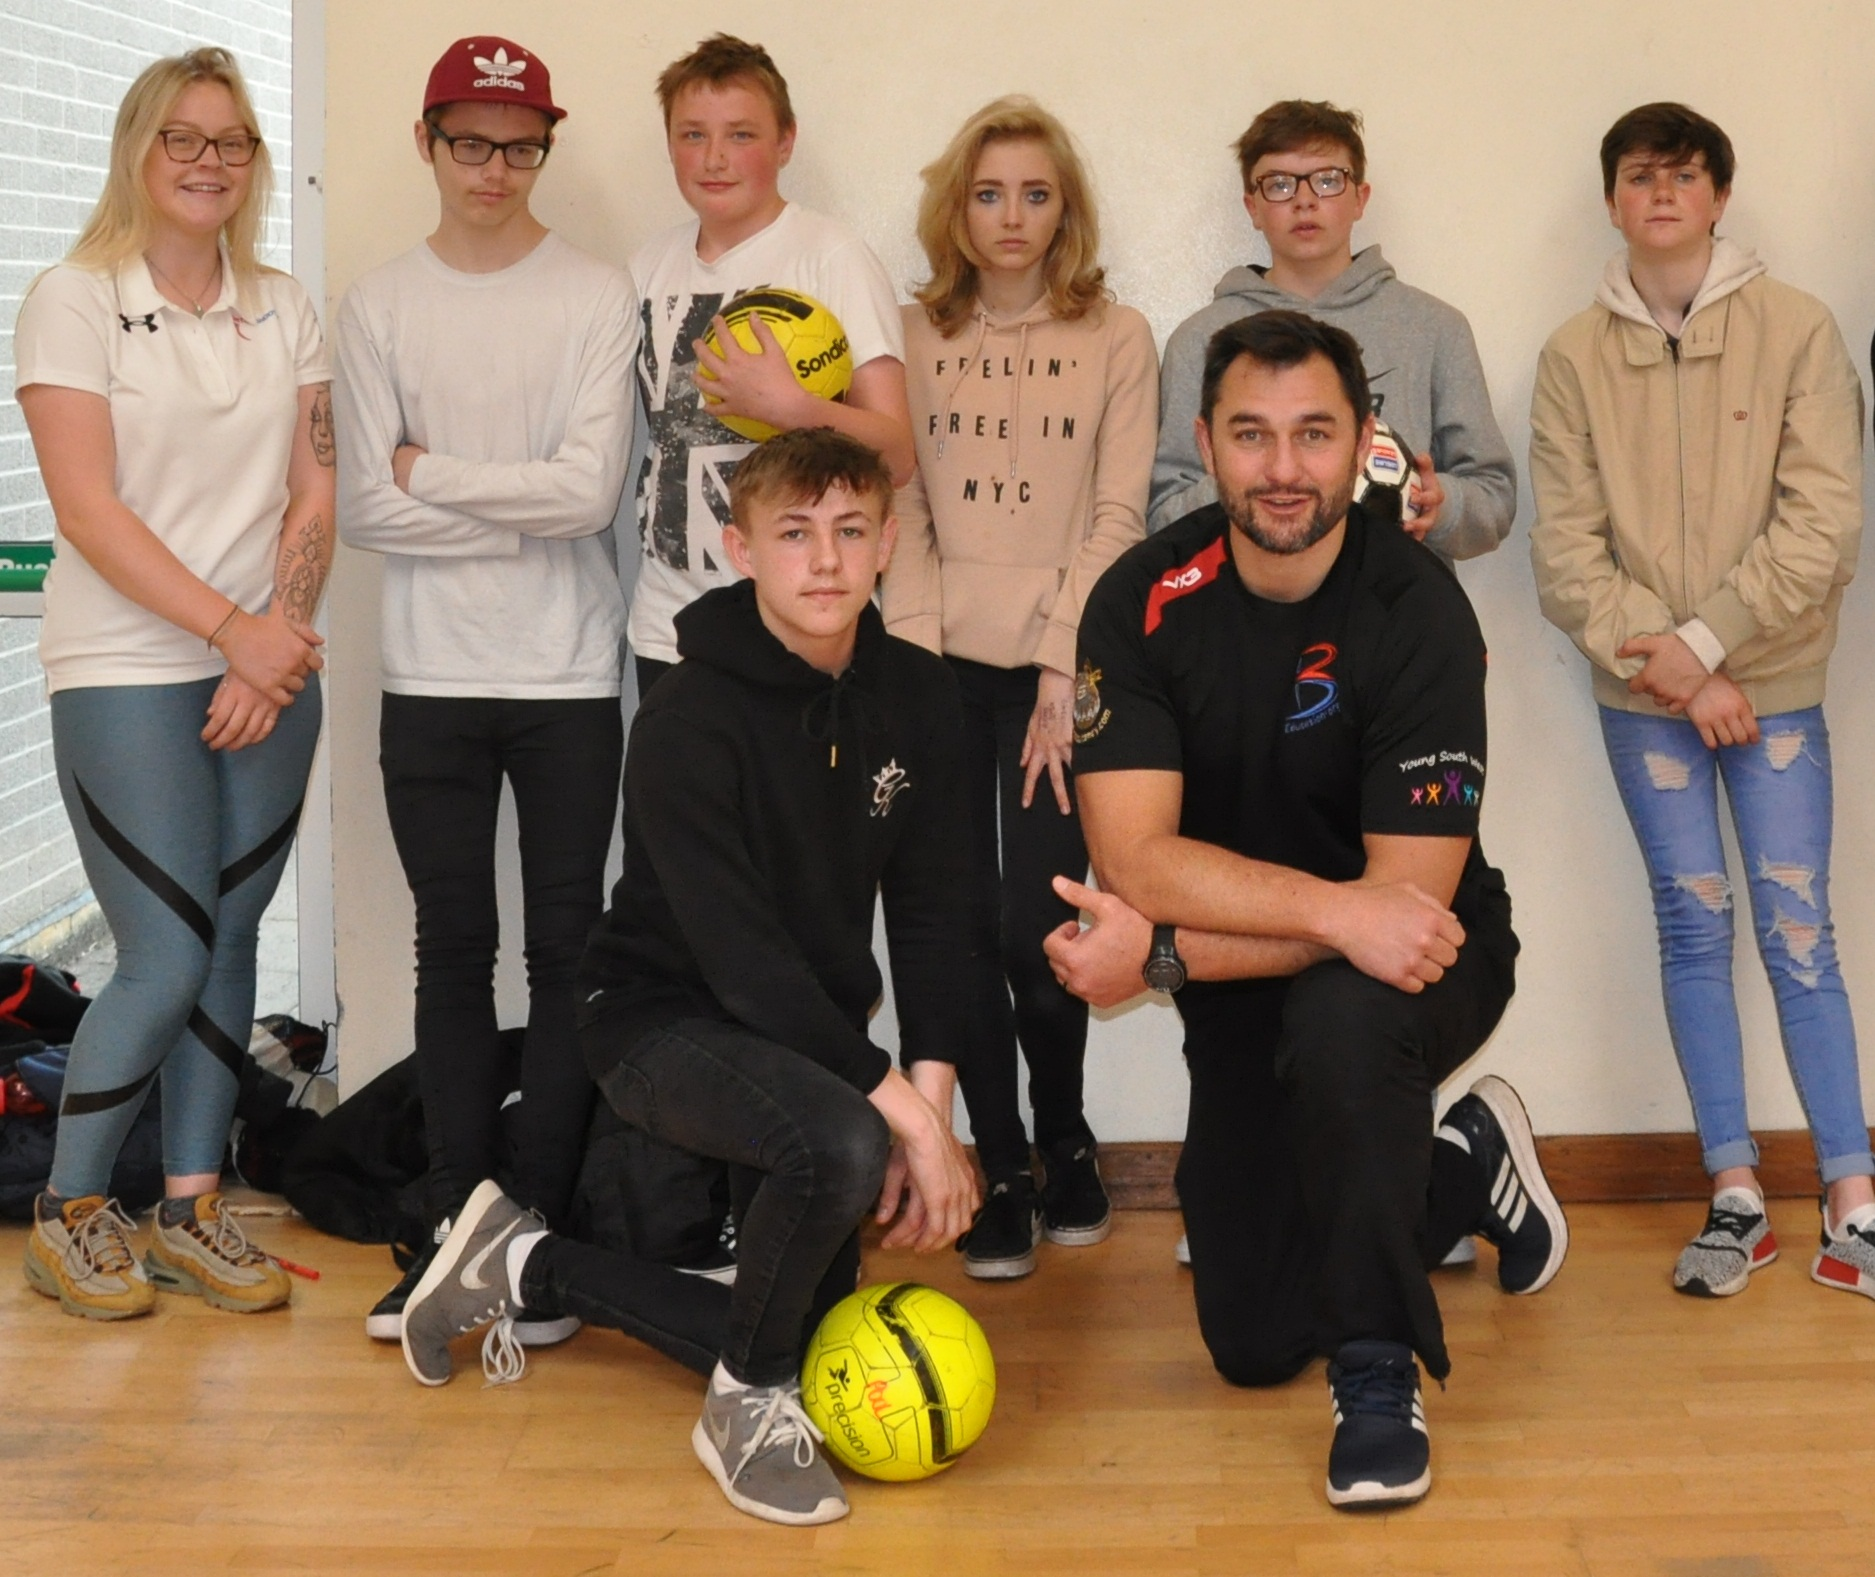 Photograph caption:  Thinus Delport, international Rugby player, with students from Pool Academy.